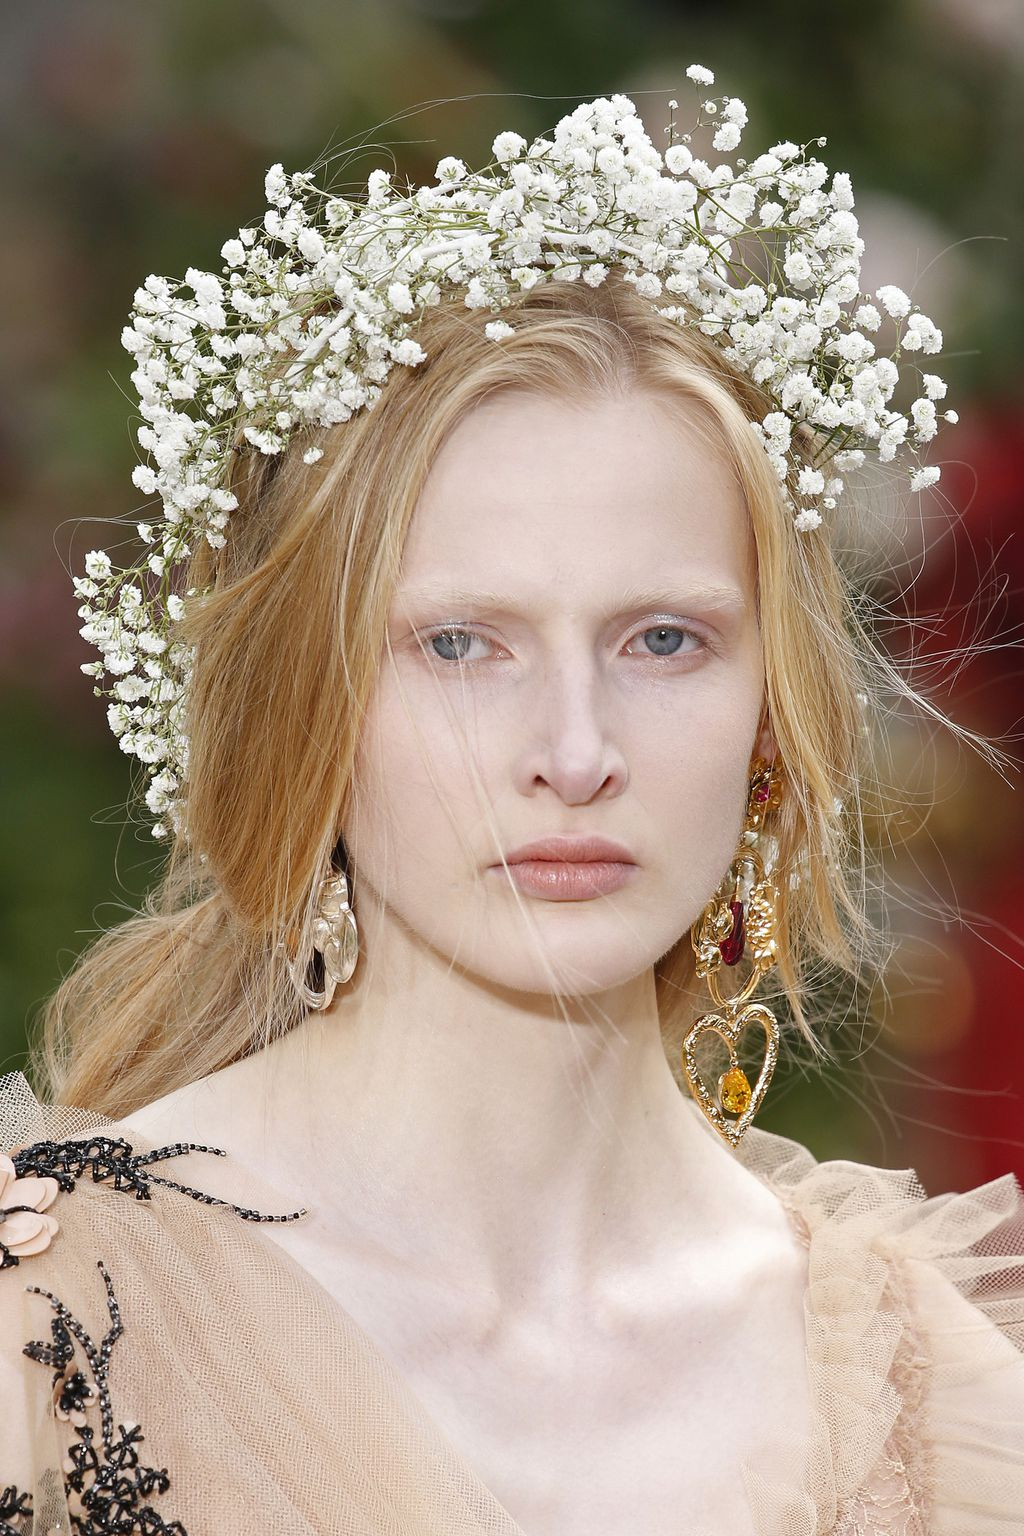 Flower crowns steal the show at paris fashion week floral wreaths made from gypsophila colloquially known as babys breath adorned the heads and arms of models as they floated down the catwalk izmirmasajfo